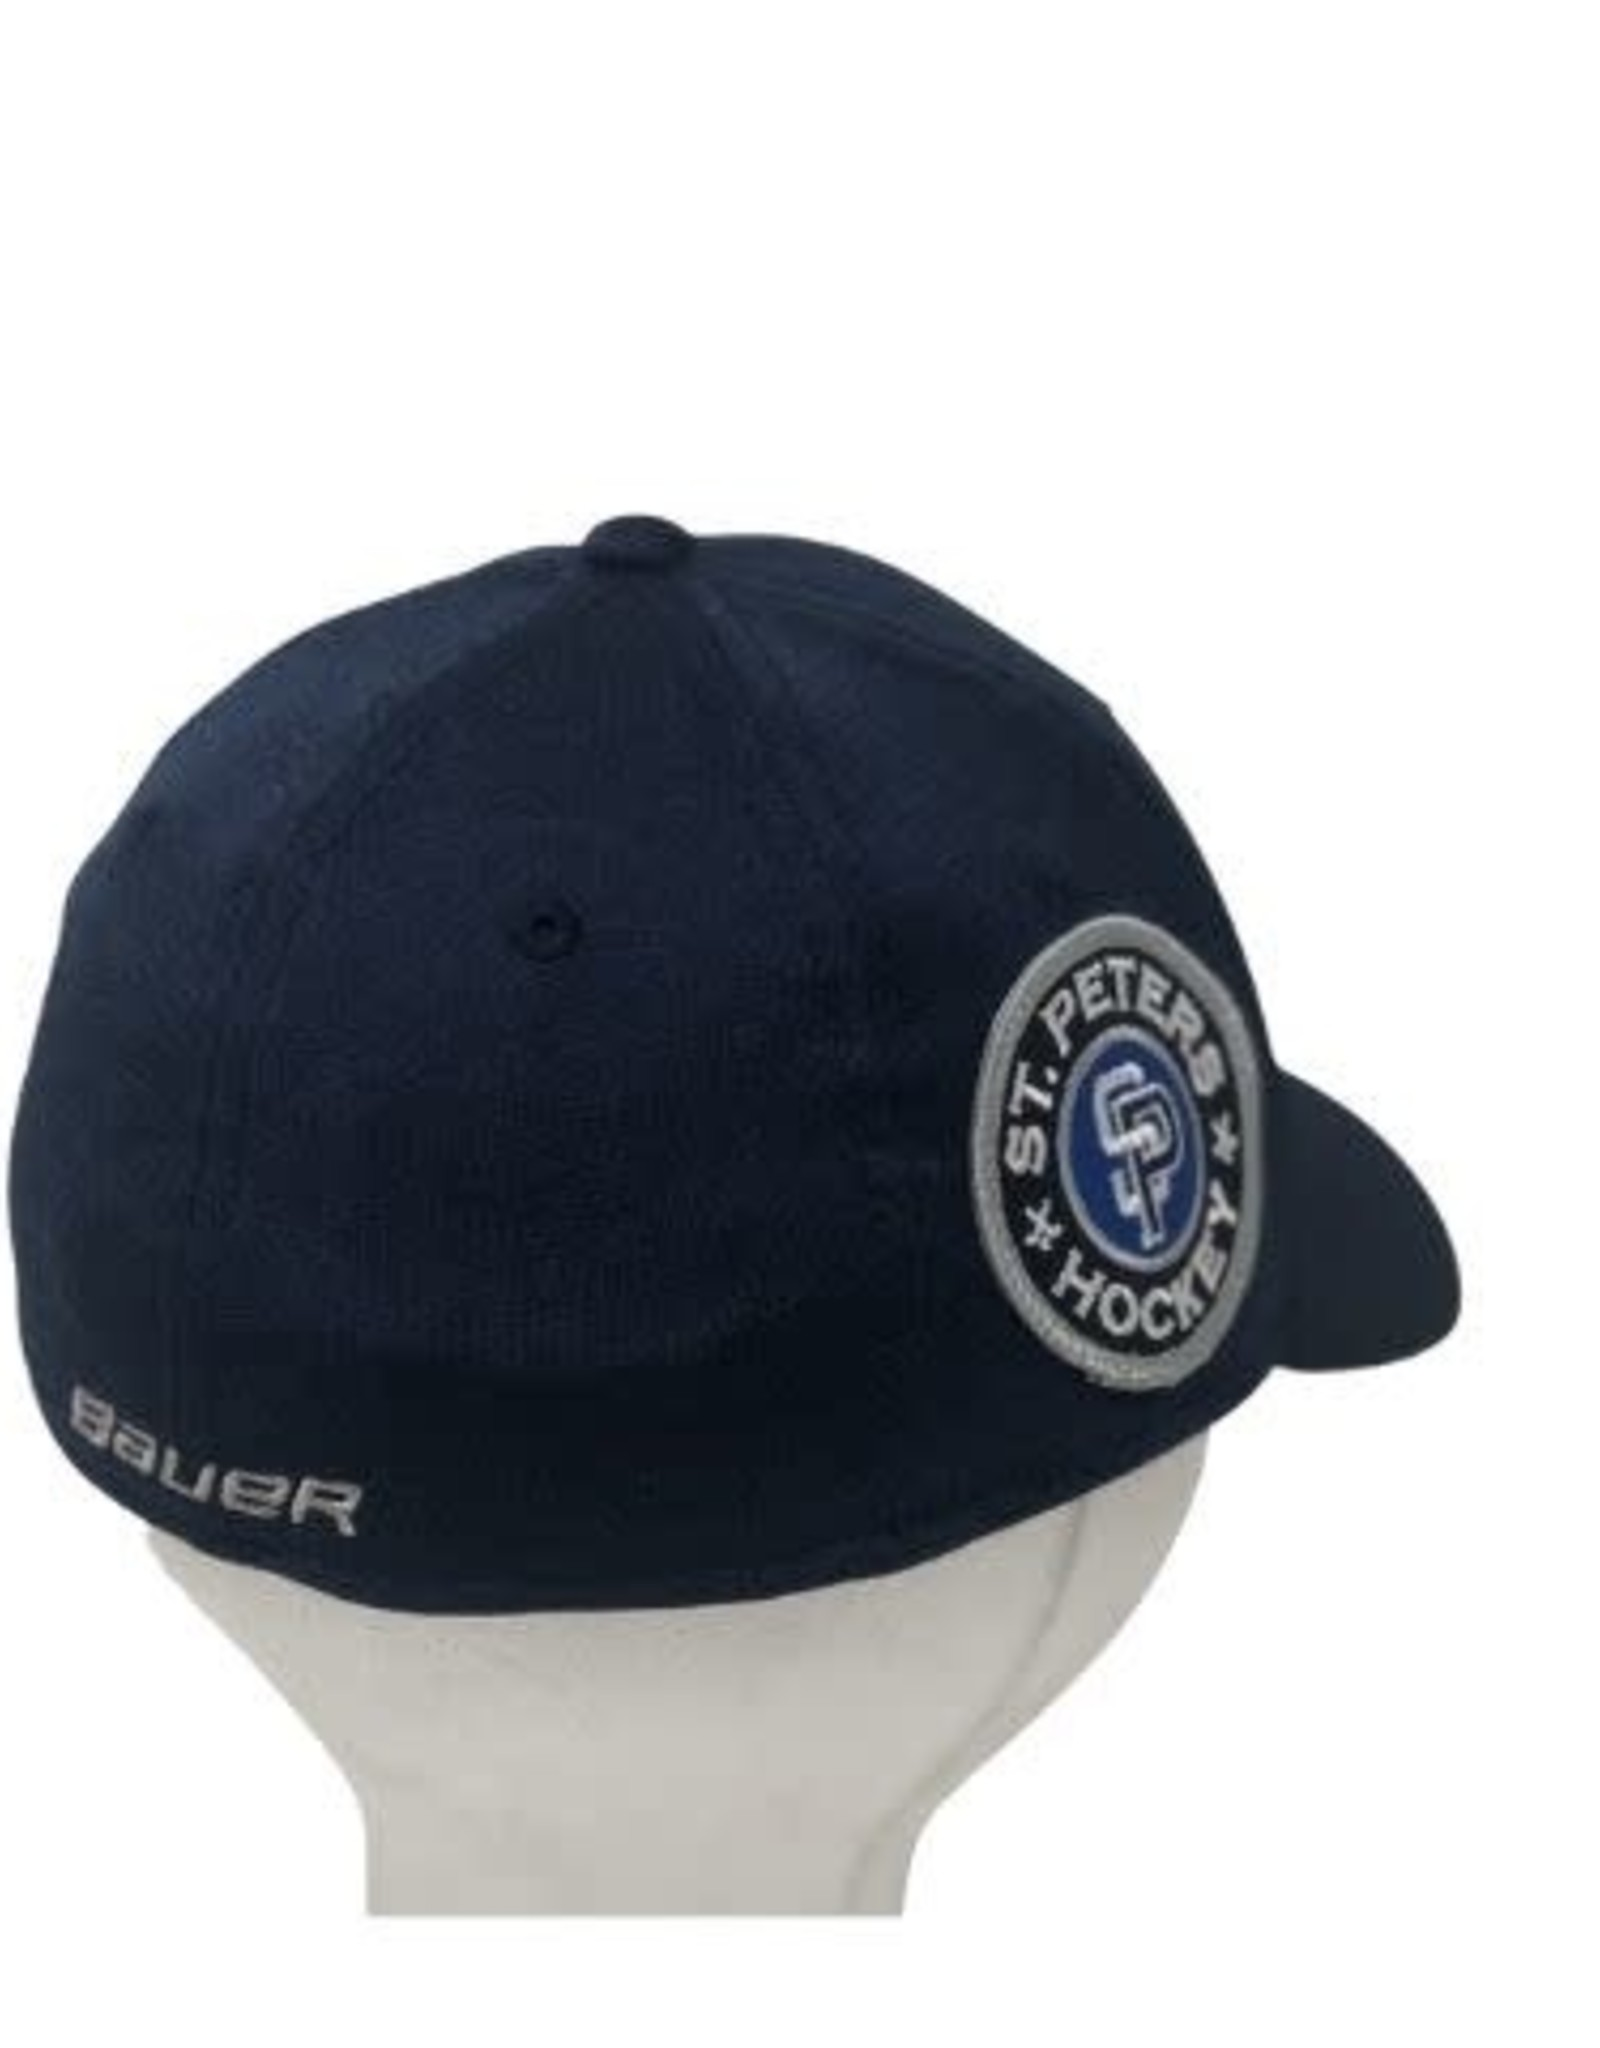 TGP Services STP Bauer 3930 Hat (MD/LG) Navy